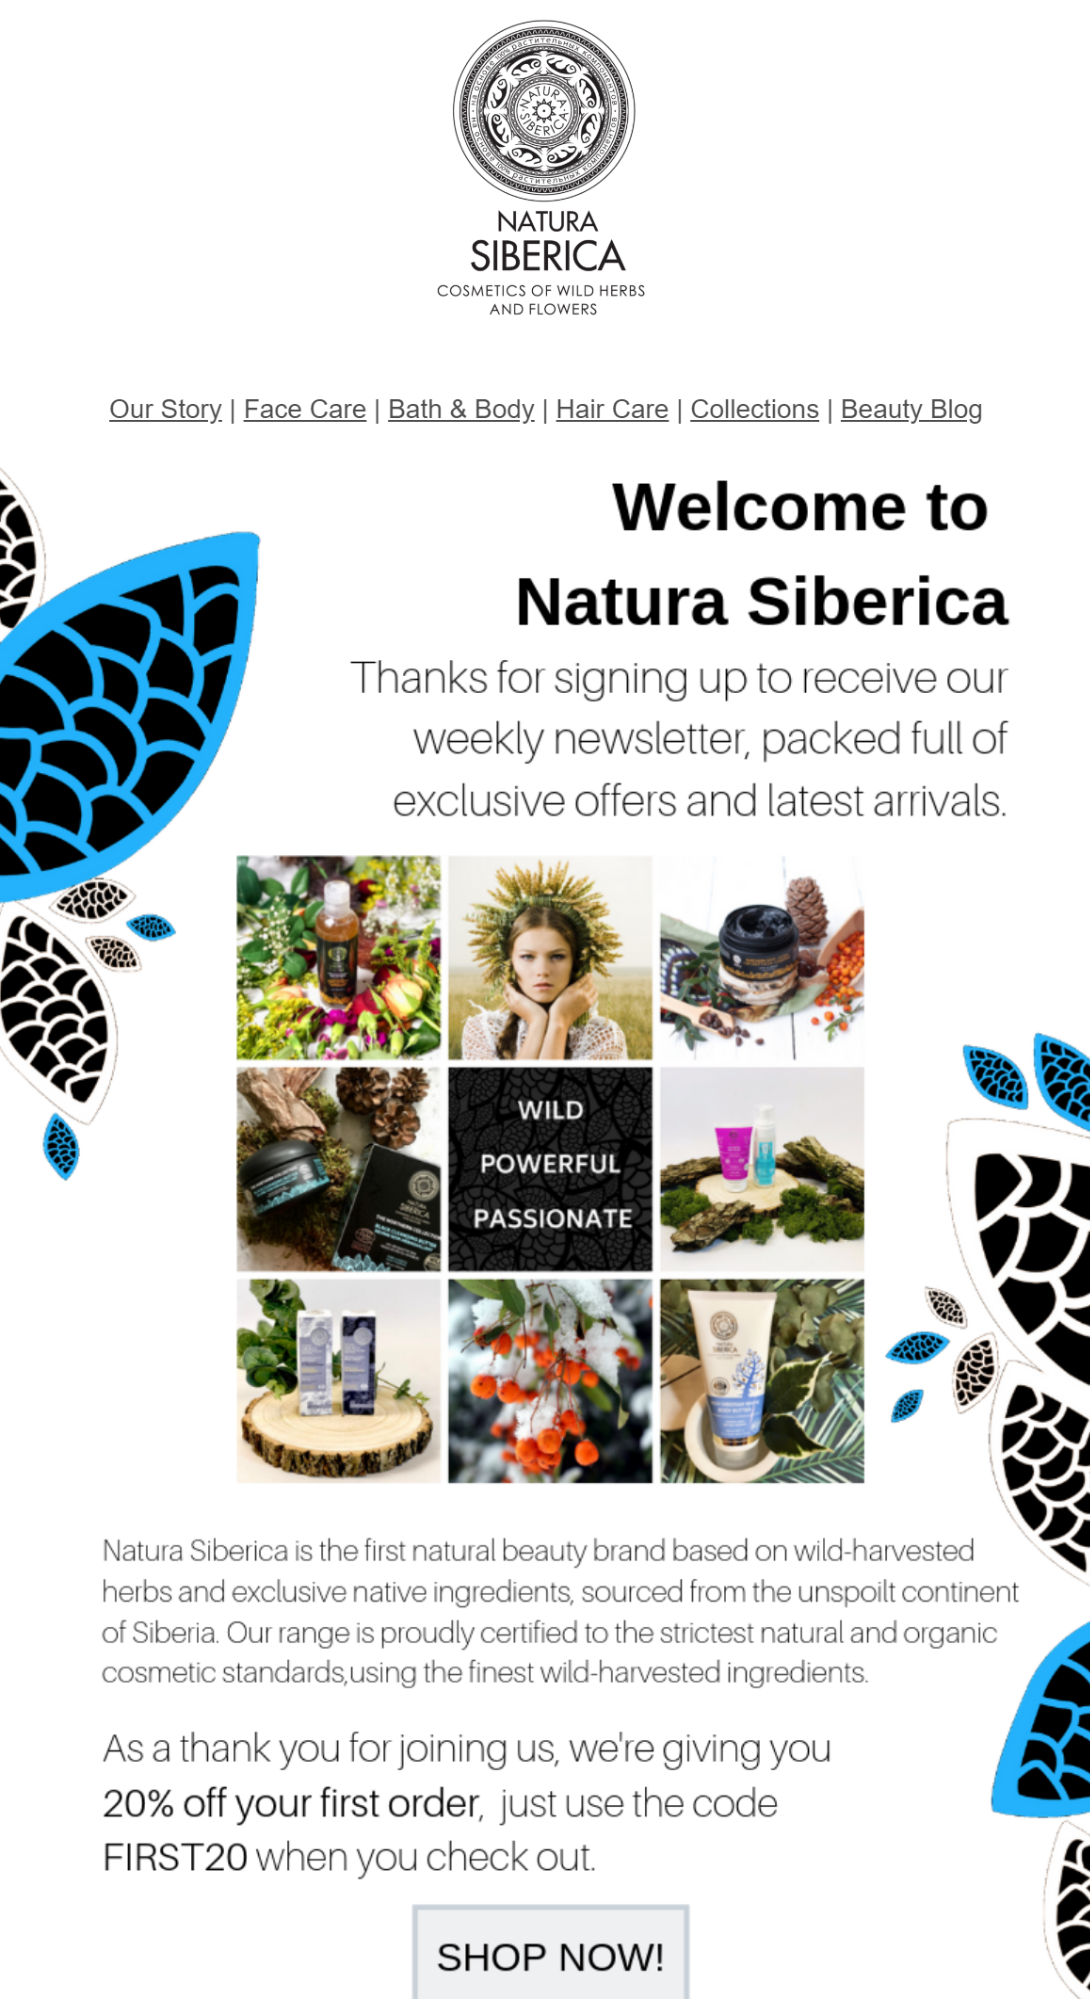 Natura Siberica welcome email marketing